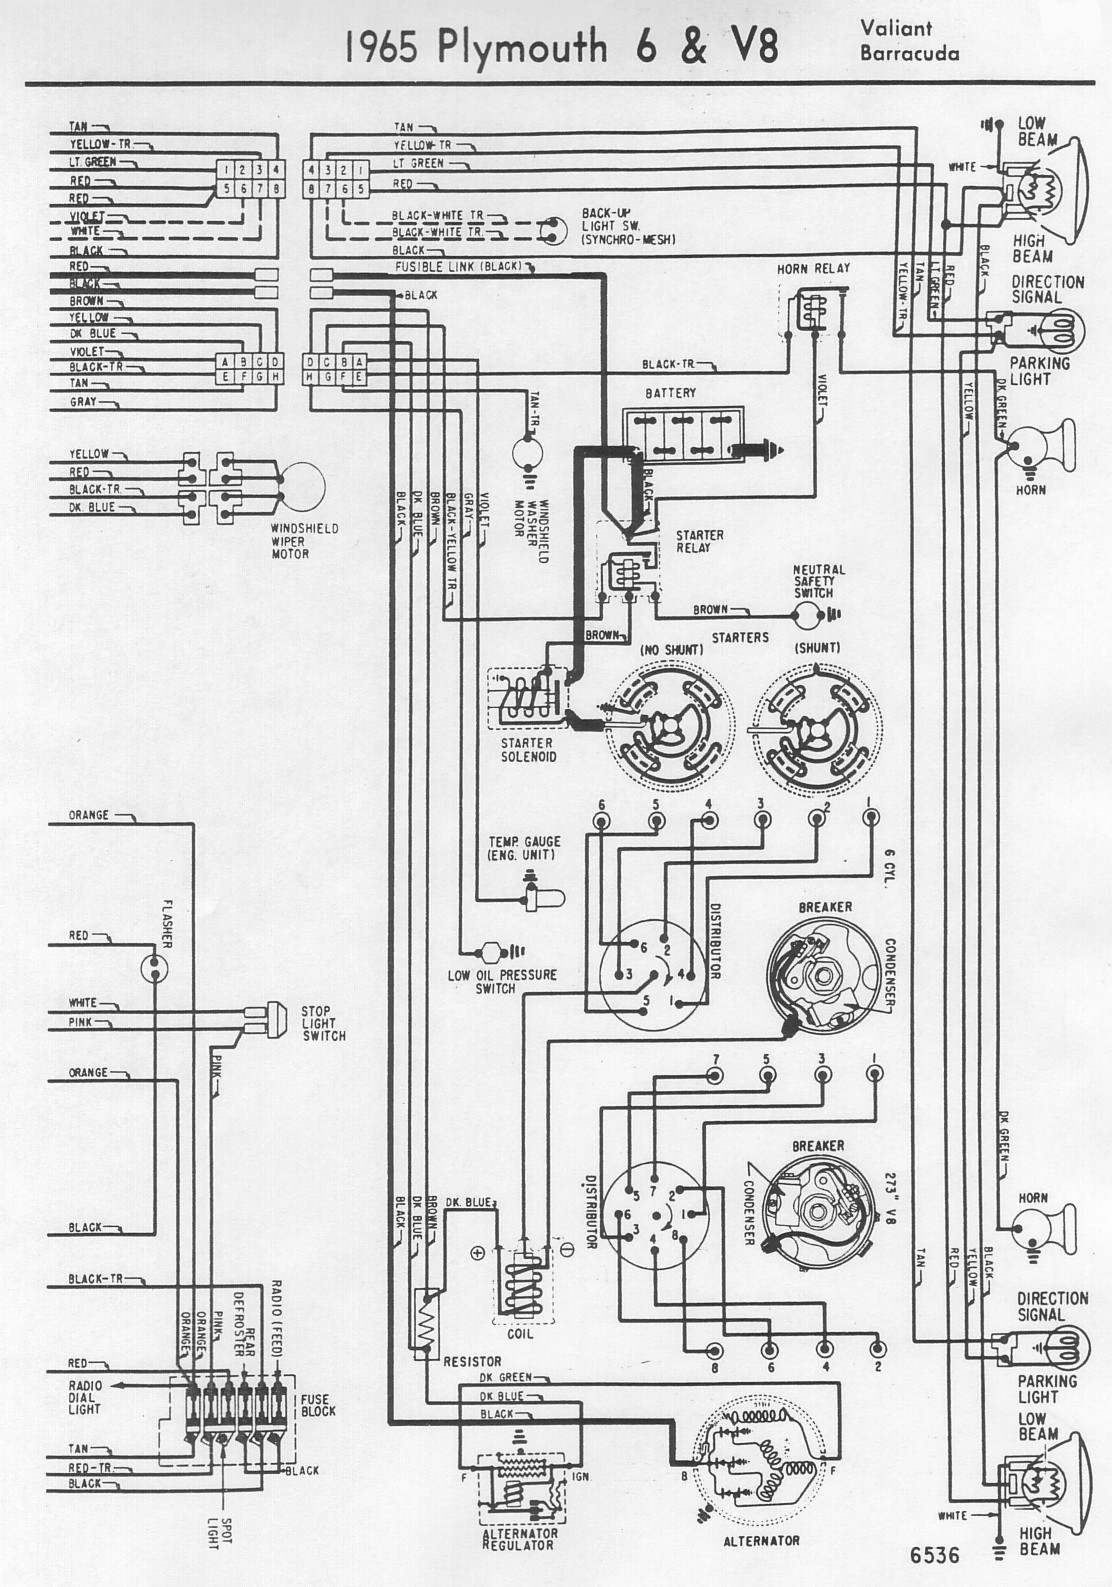 1972 Cuda Wiper Diagram Wiring Schematic Great Installation Of Gm Switch Images Gallery